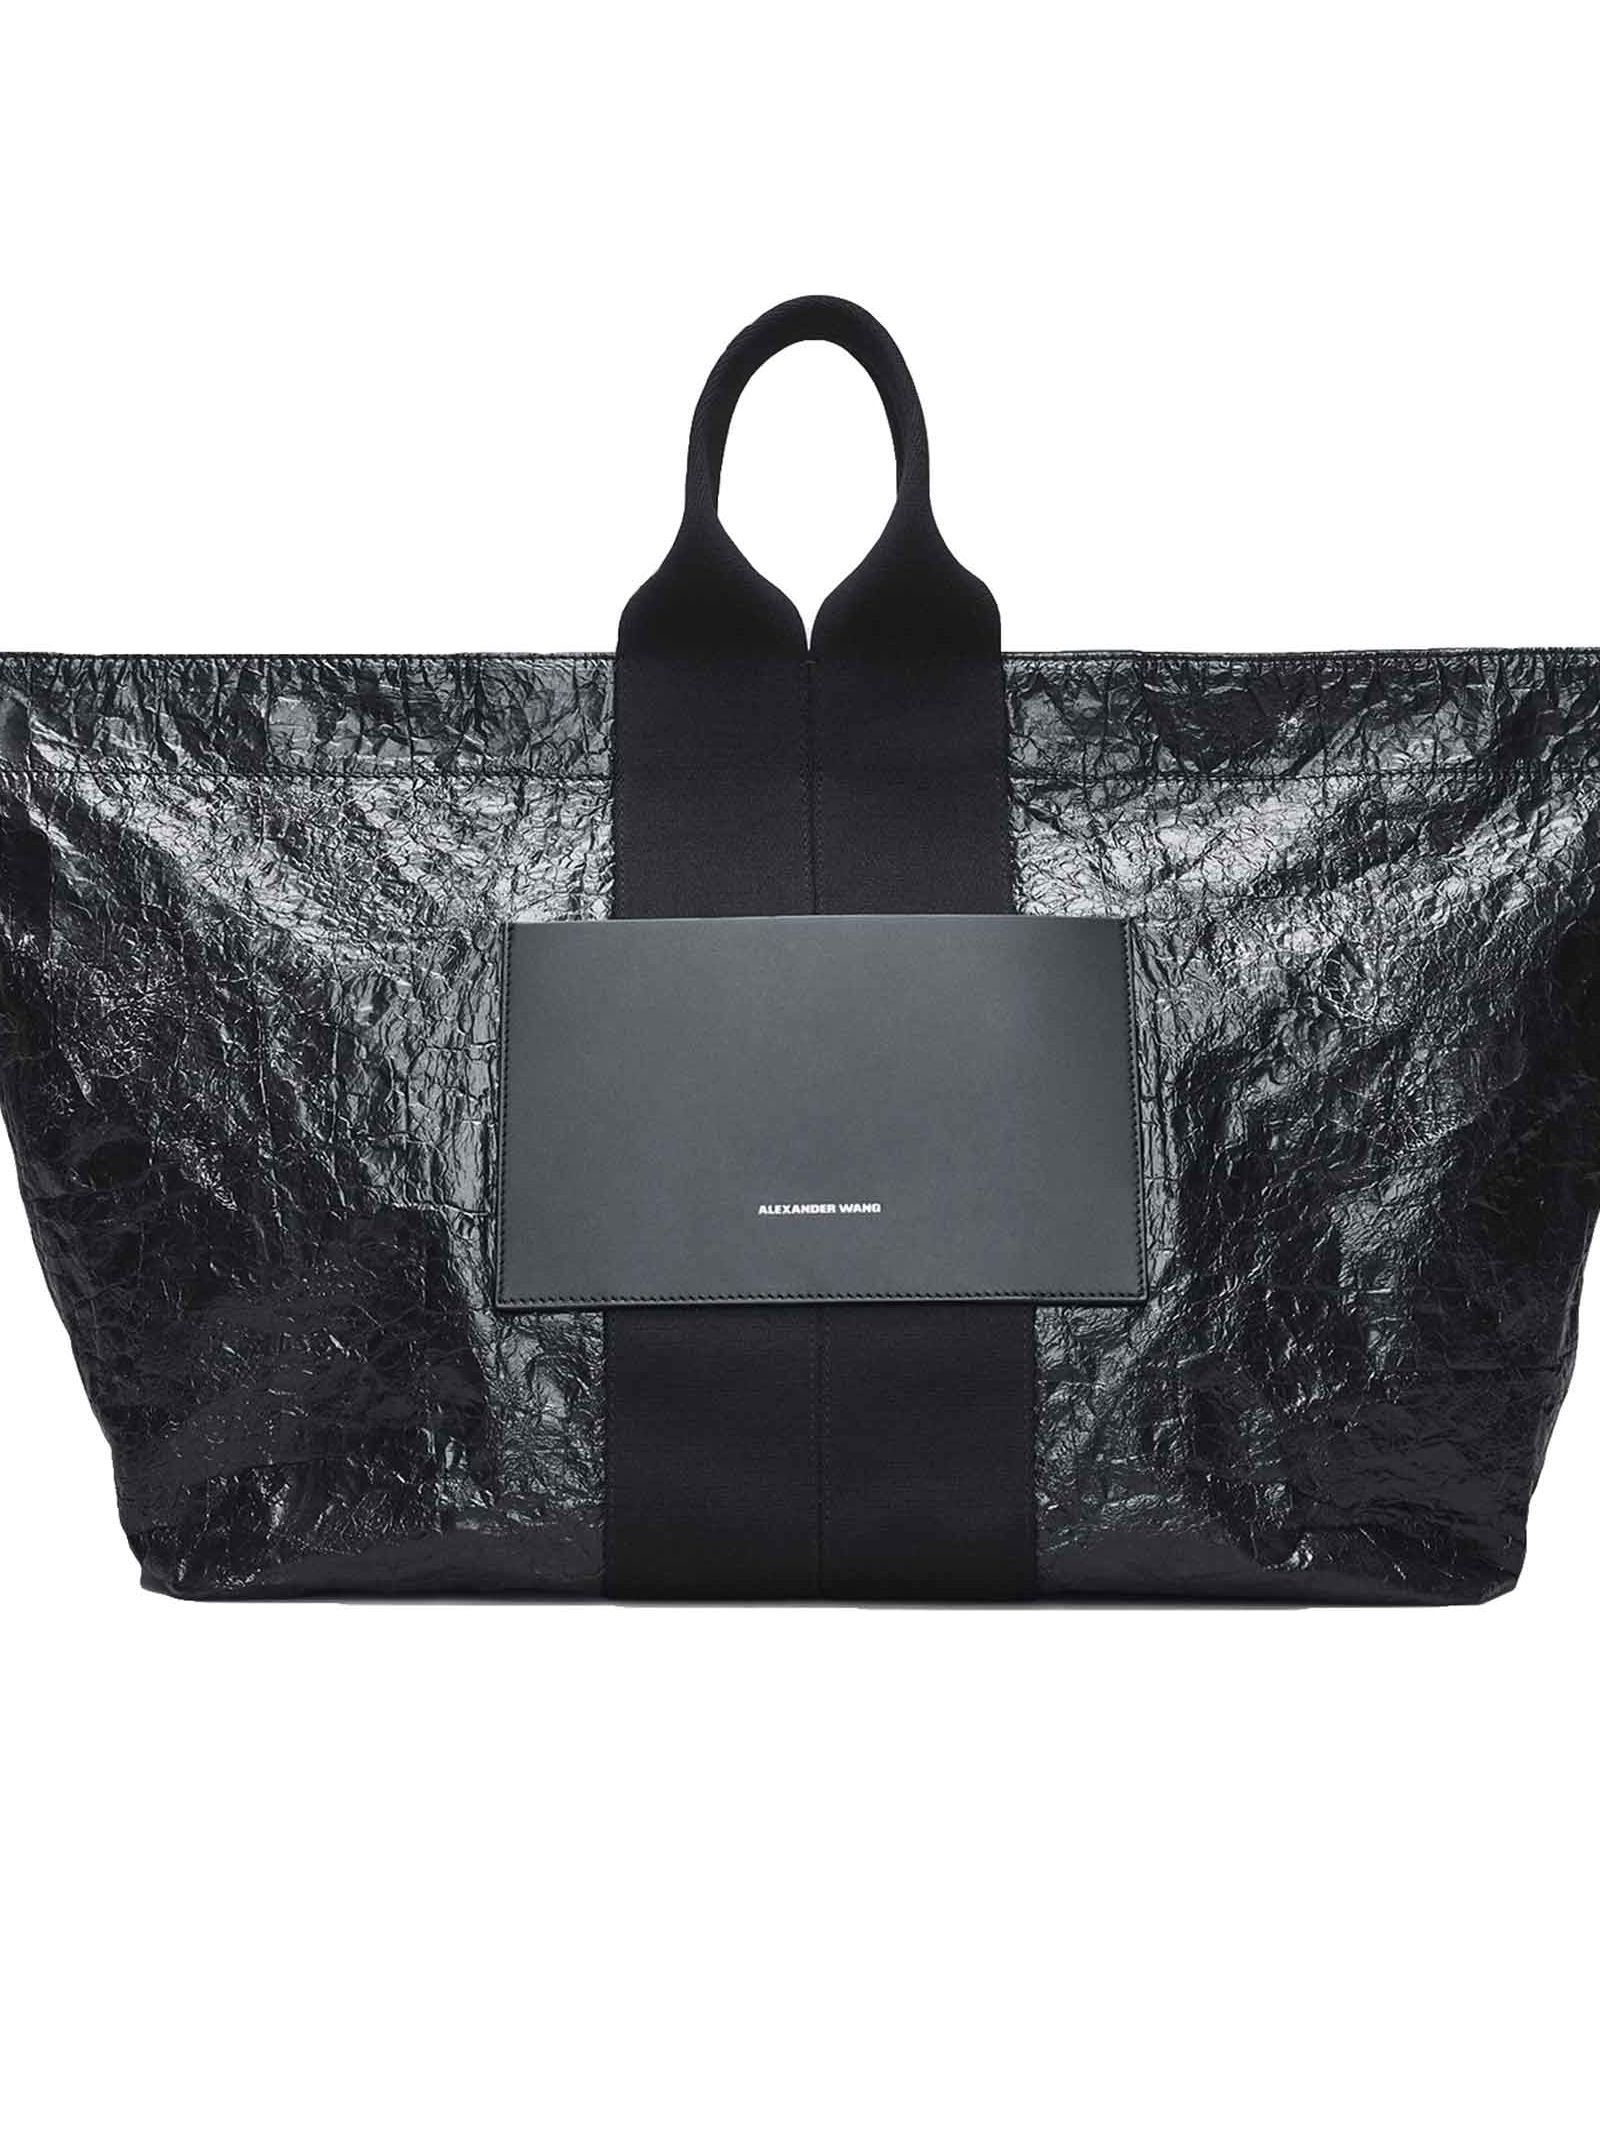 9f7d0301b5f6 ALEXANDER WANG AW LOGO TOTE. #alexanderwang #bags #leather #hand bags  #polyester #tote #